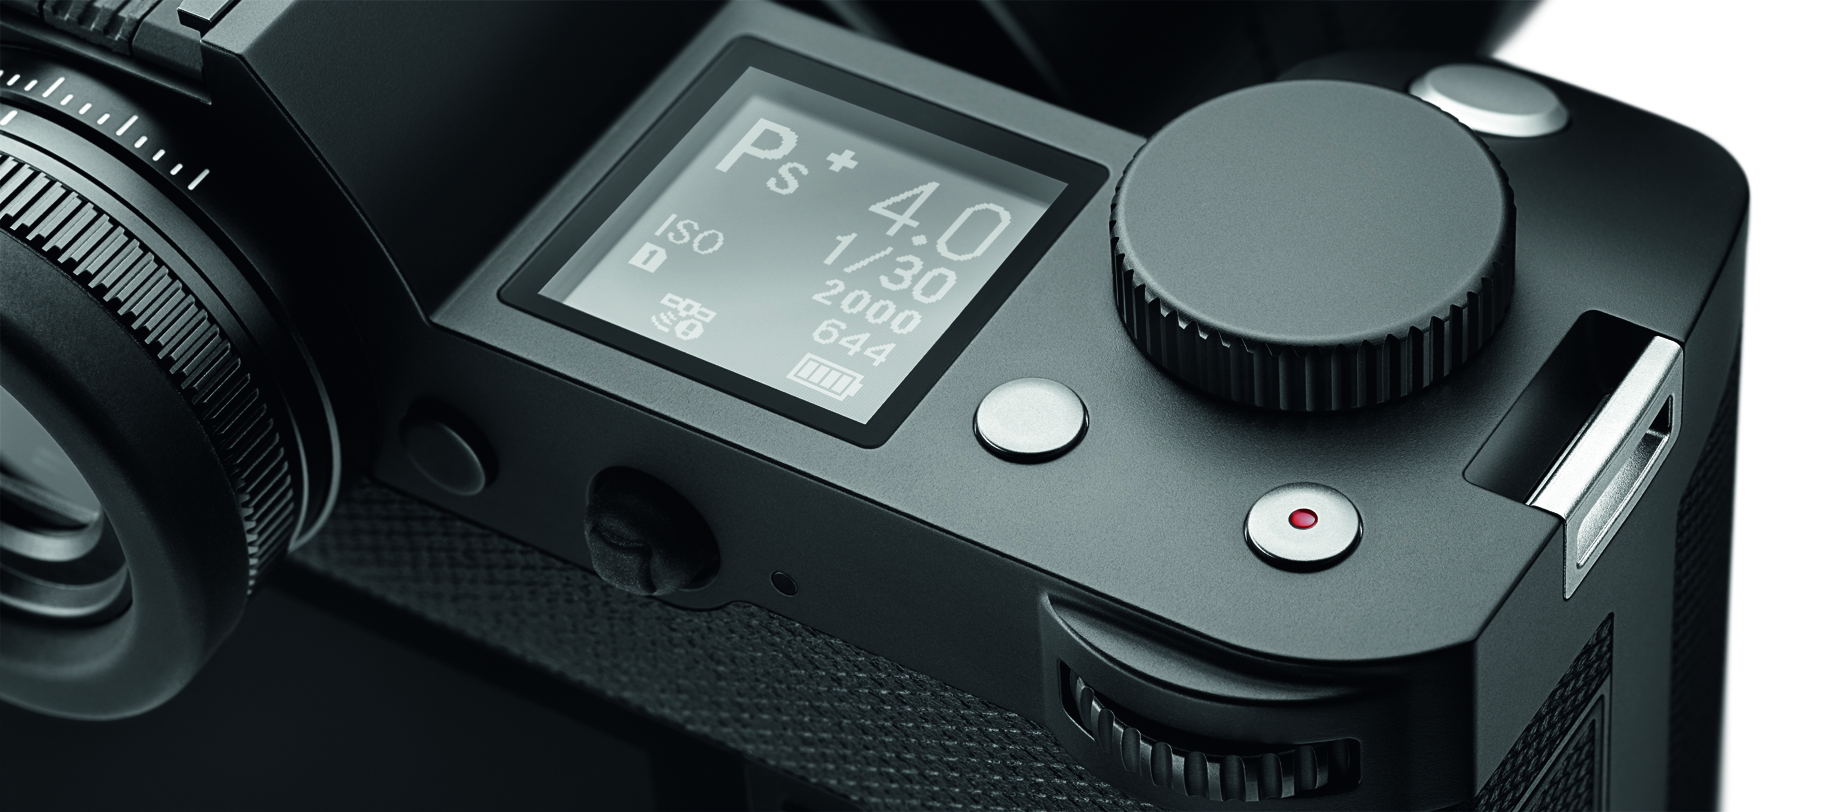 Leica SL Review: a Full Frame Mirrorless Monster